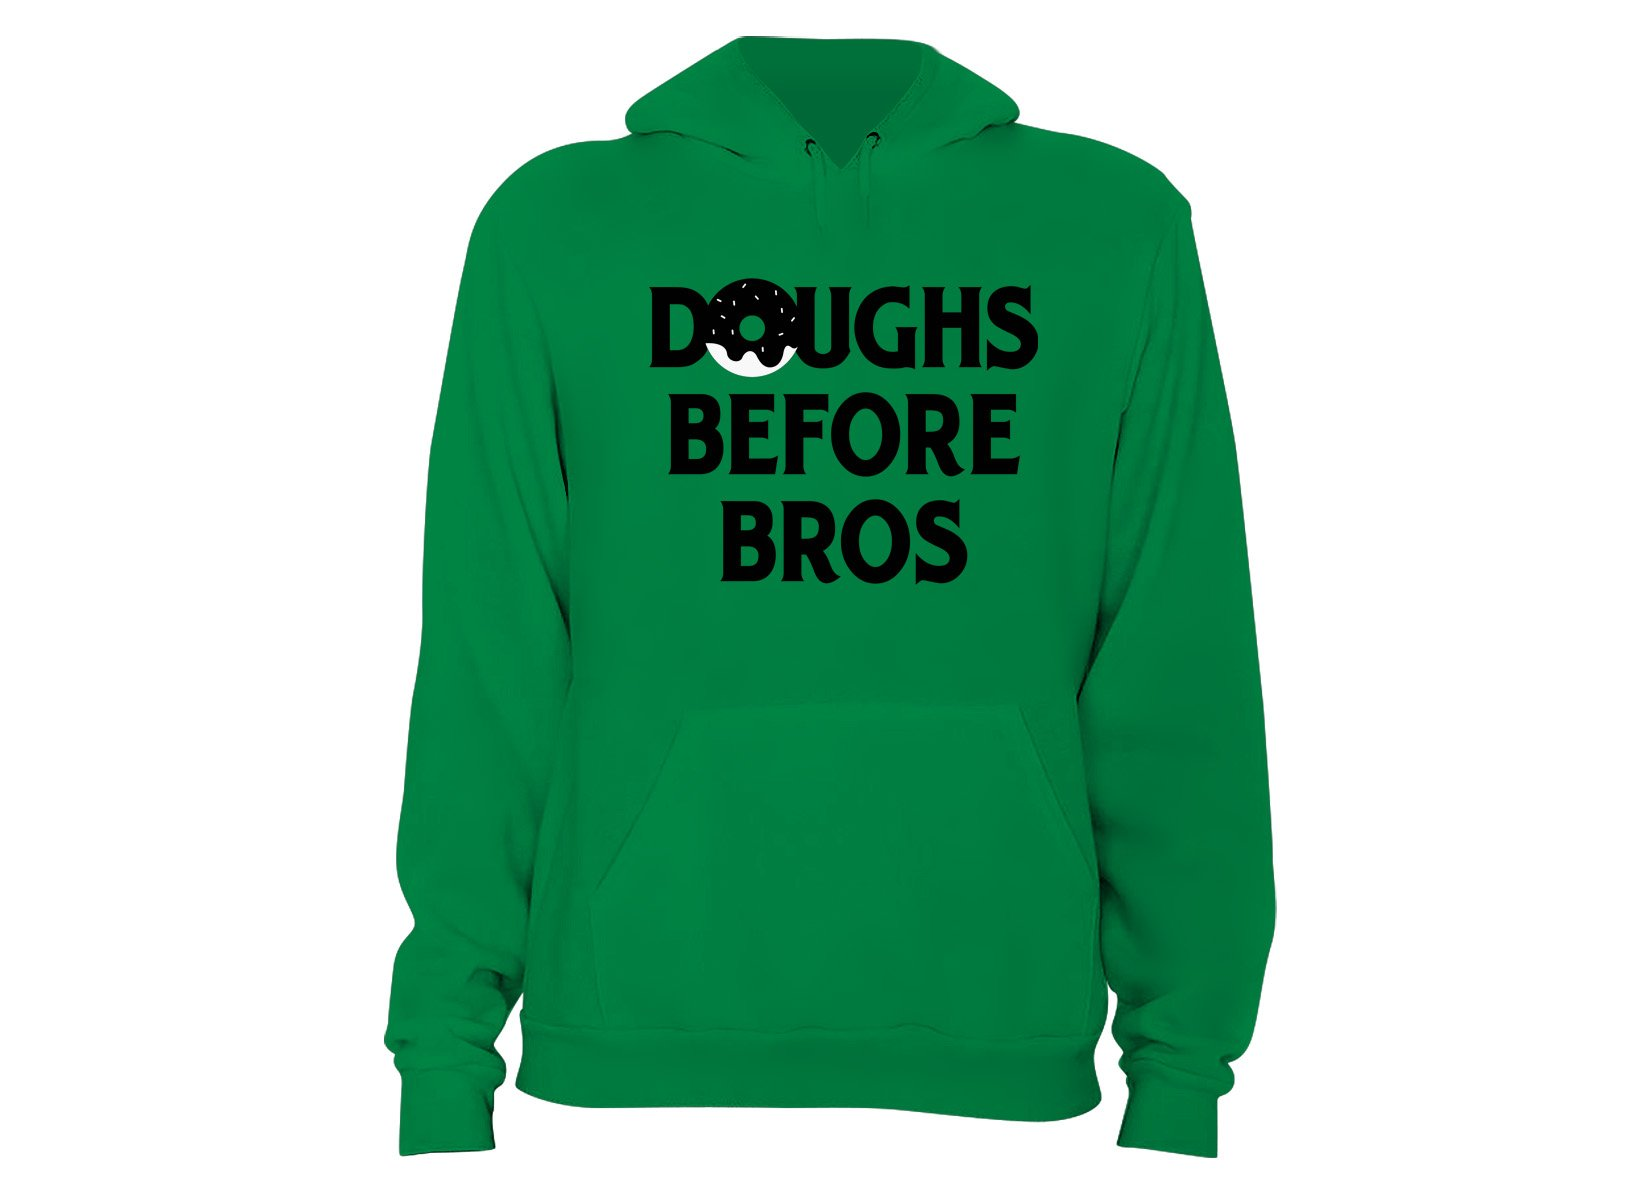 Doughs Before Bros on Hoodie